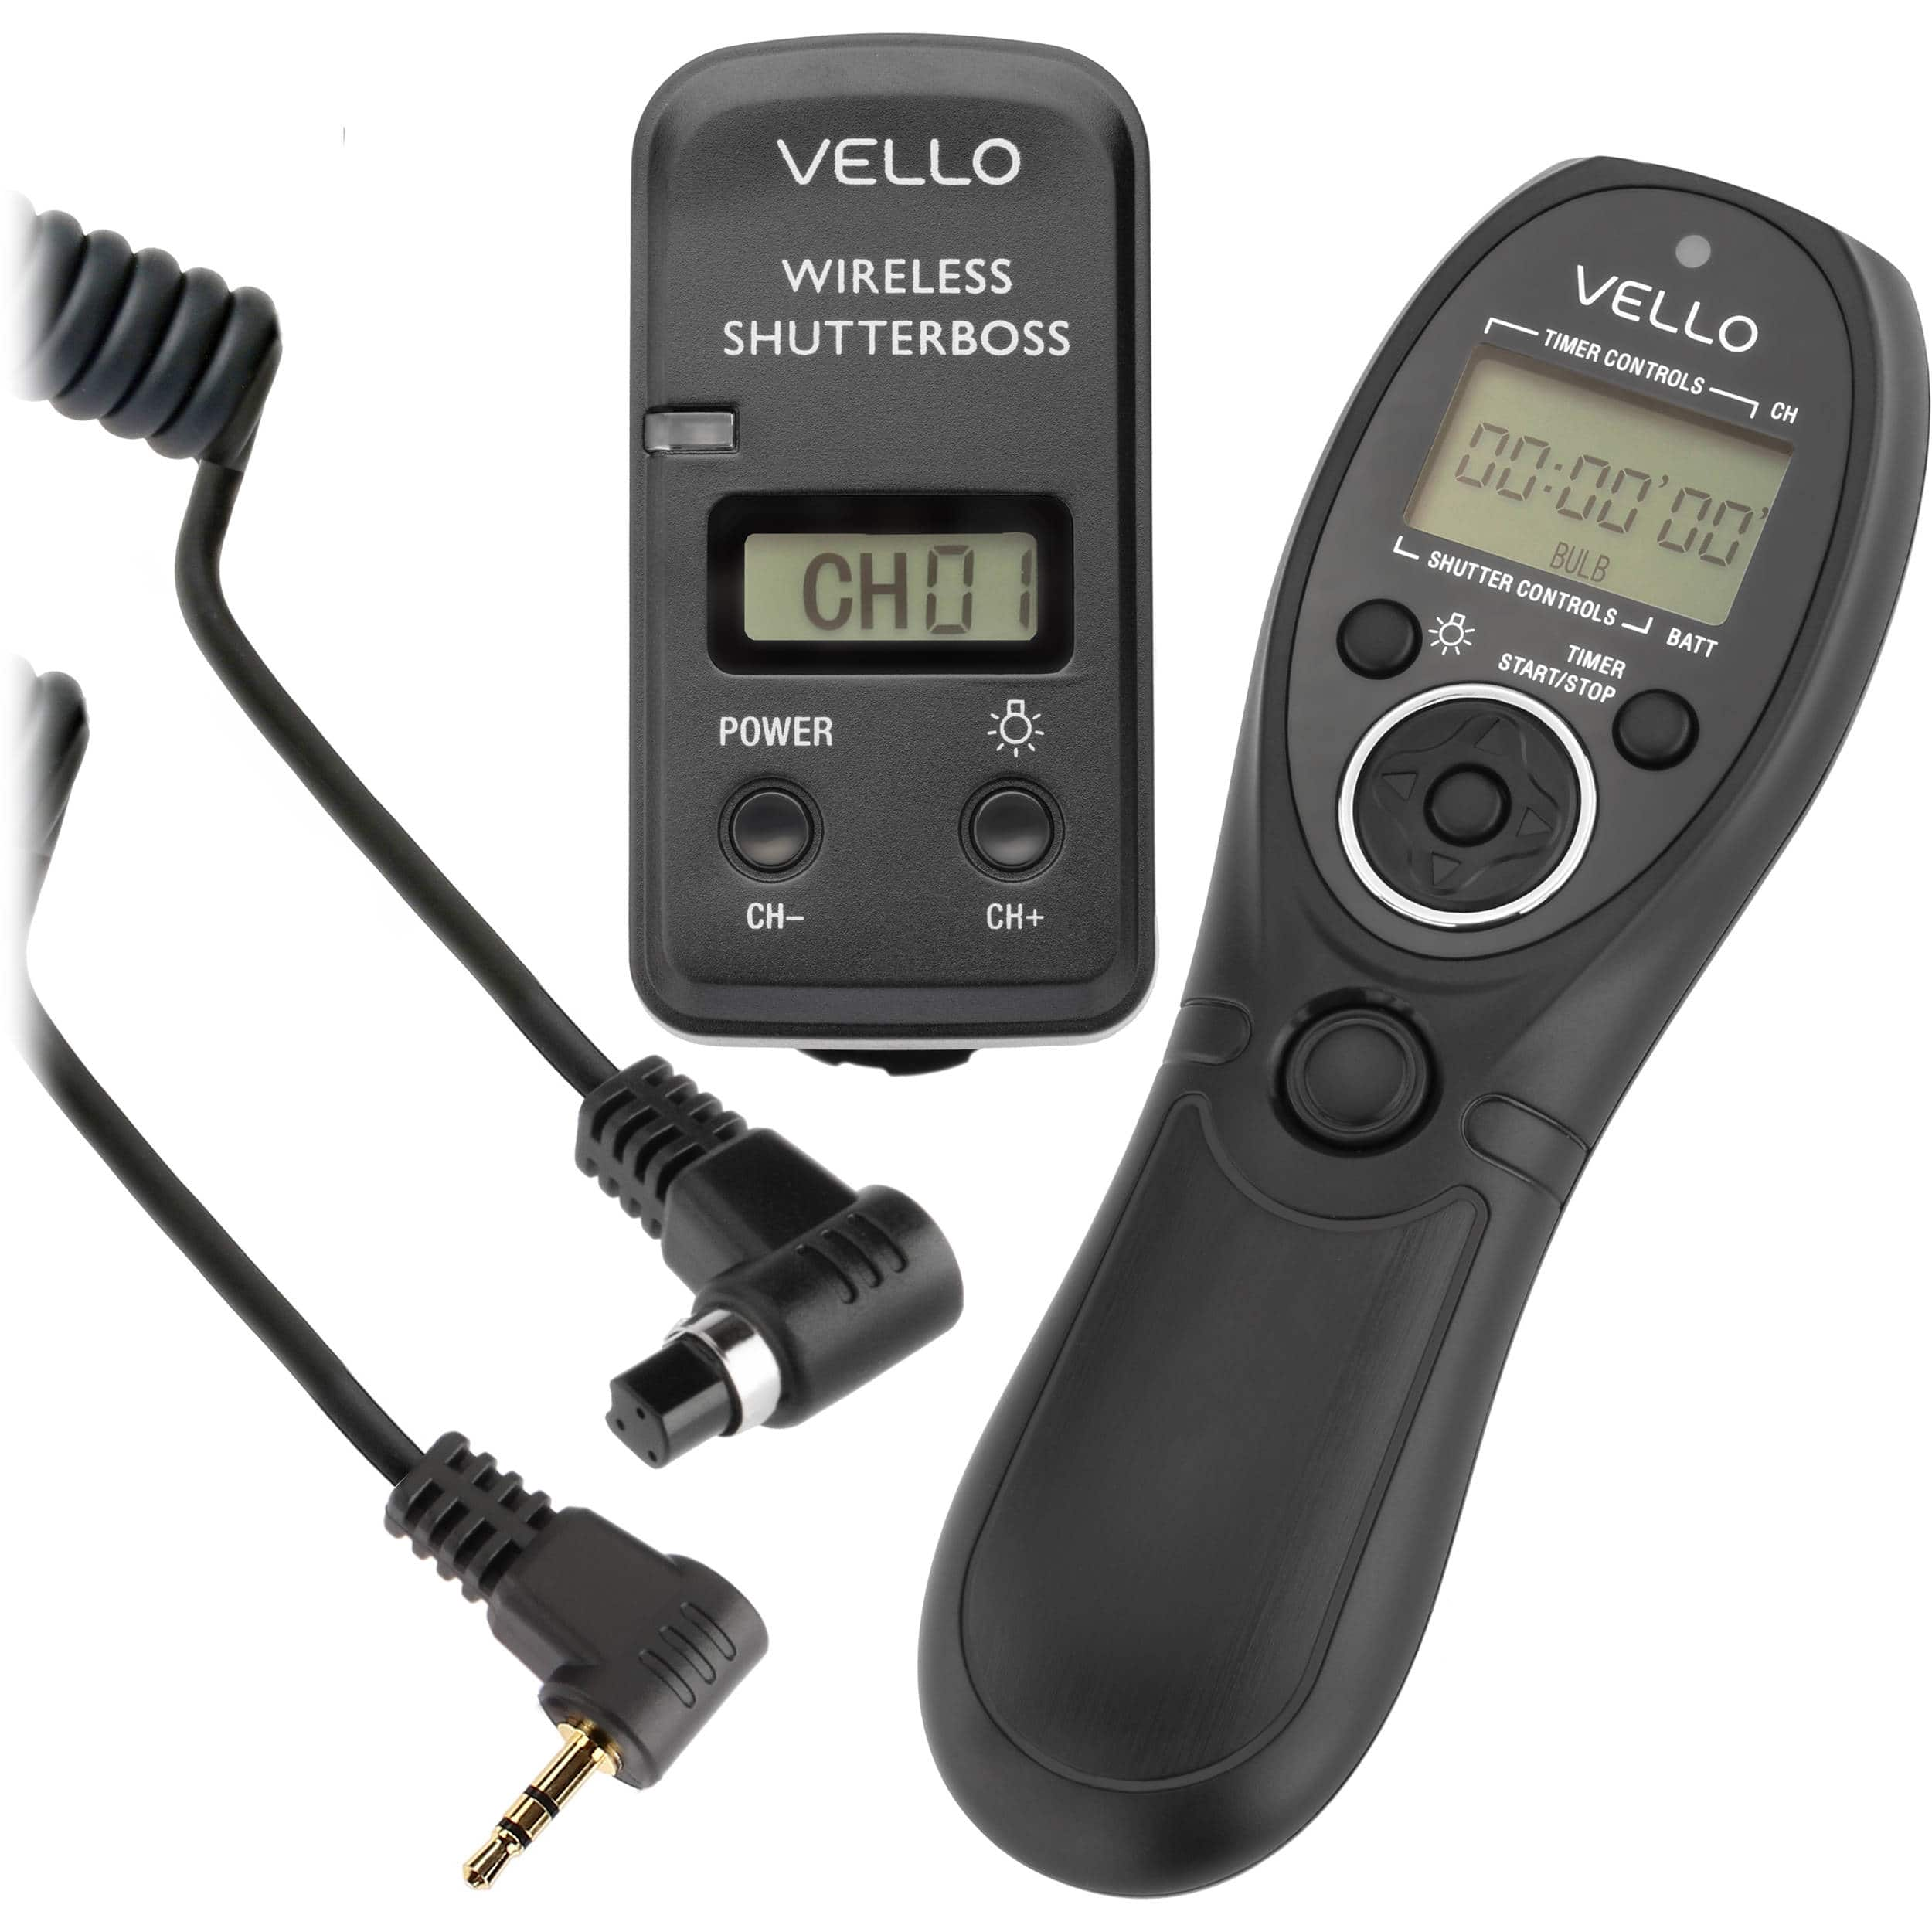 Vello Wireless ShutterBoss III Remote Switch w/ Digital Timer for Select Cameras $49 @ B&H Photo w/ Free Shipping